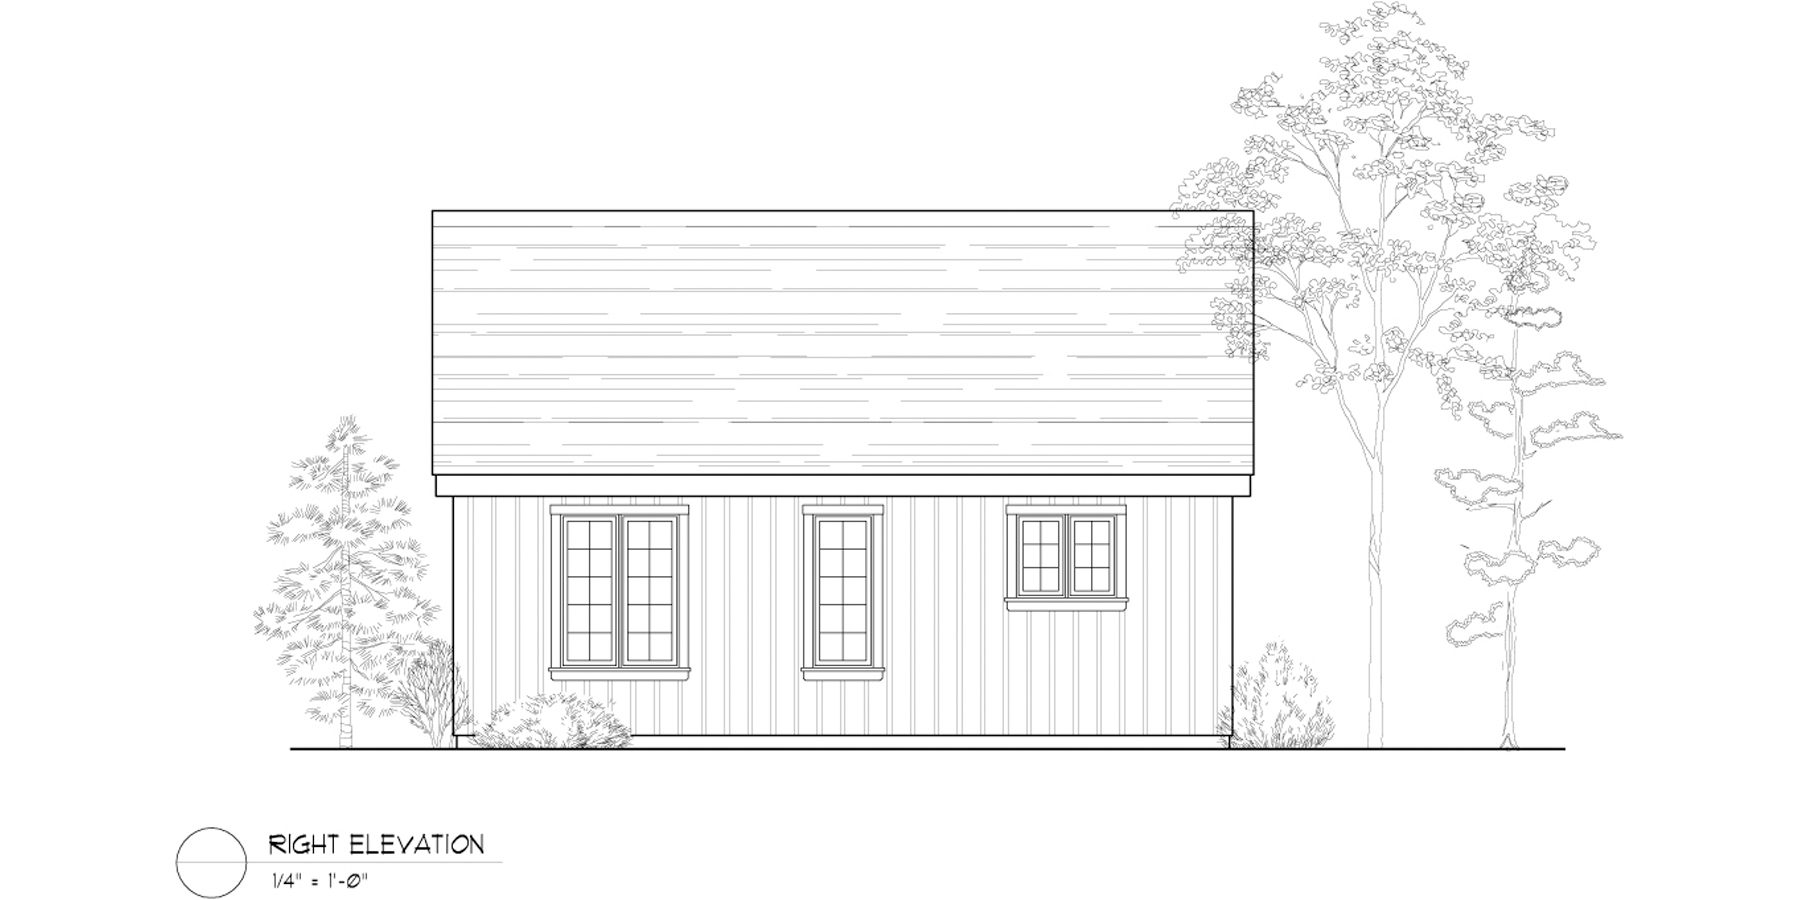 Normerica Timber Frame, House Plan, The Retreat 3143, Right Elevation